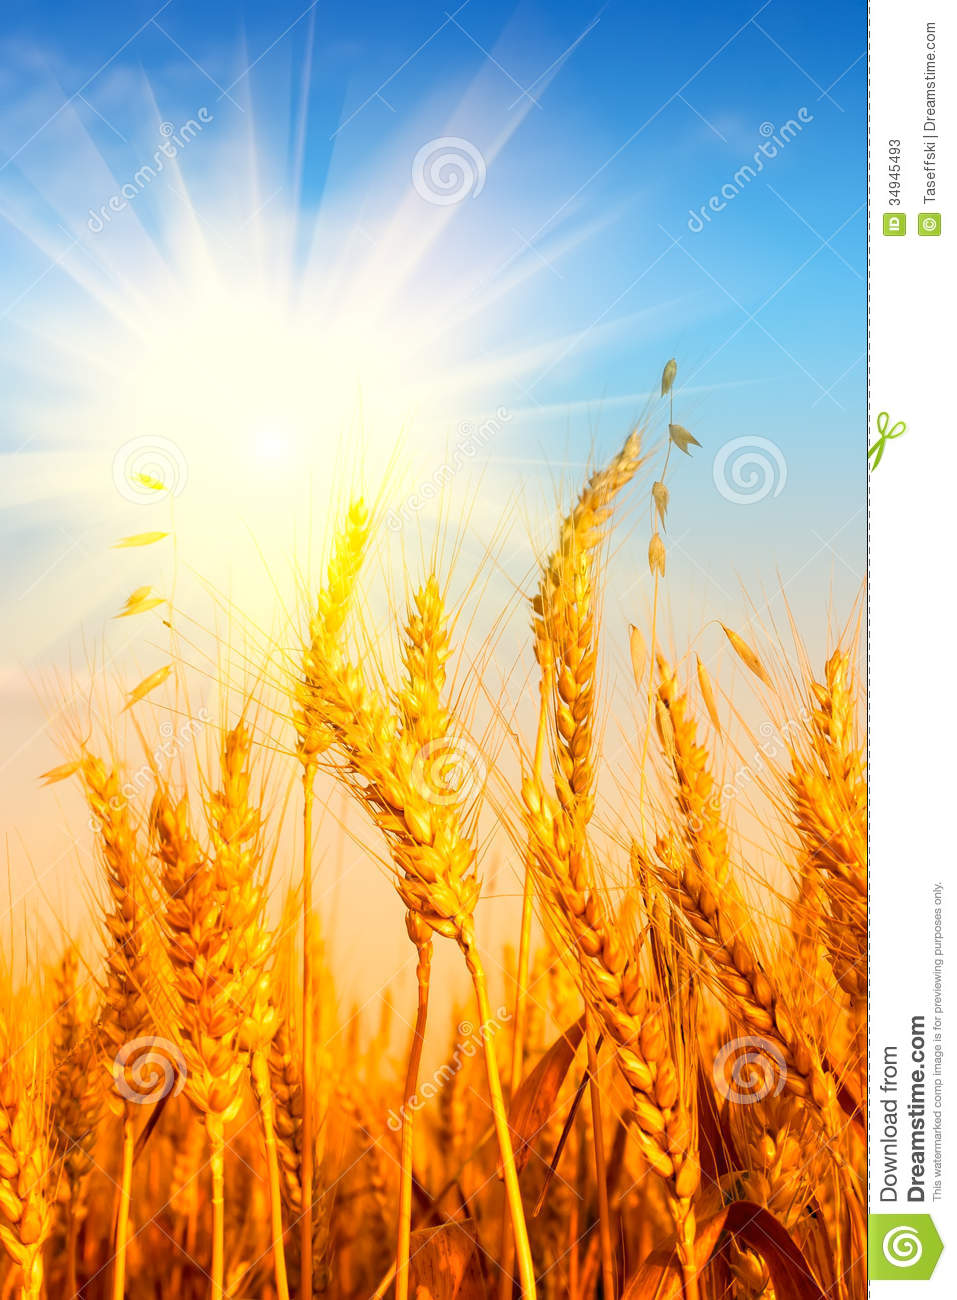 Wheat Field And Blue Sky With Sun Stock Image - Image of